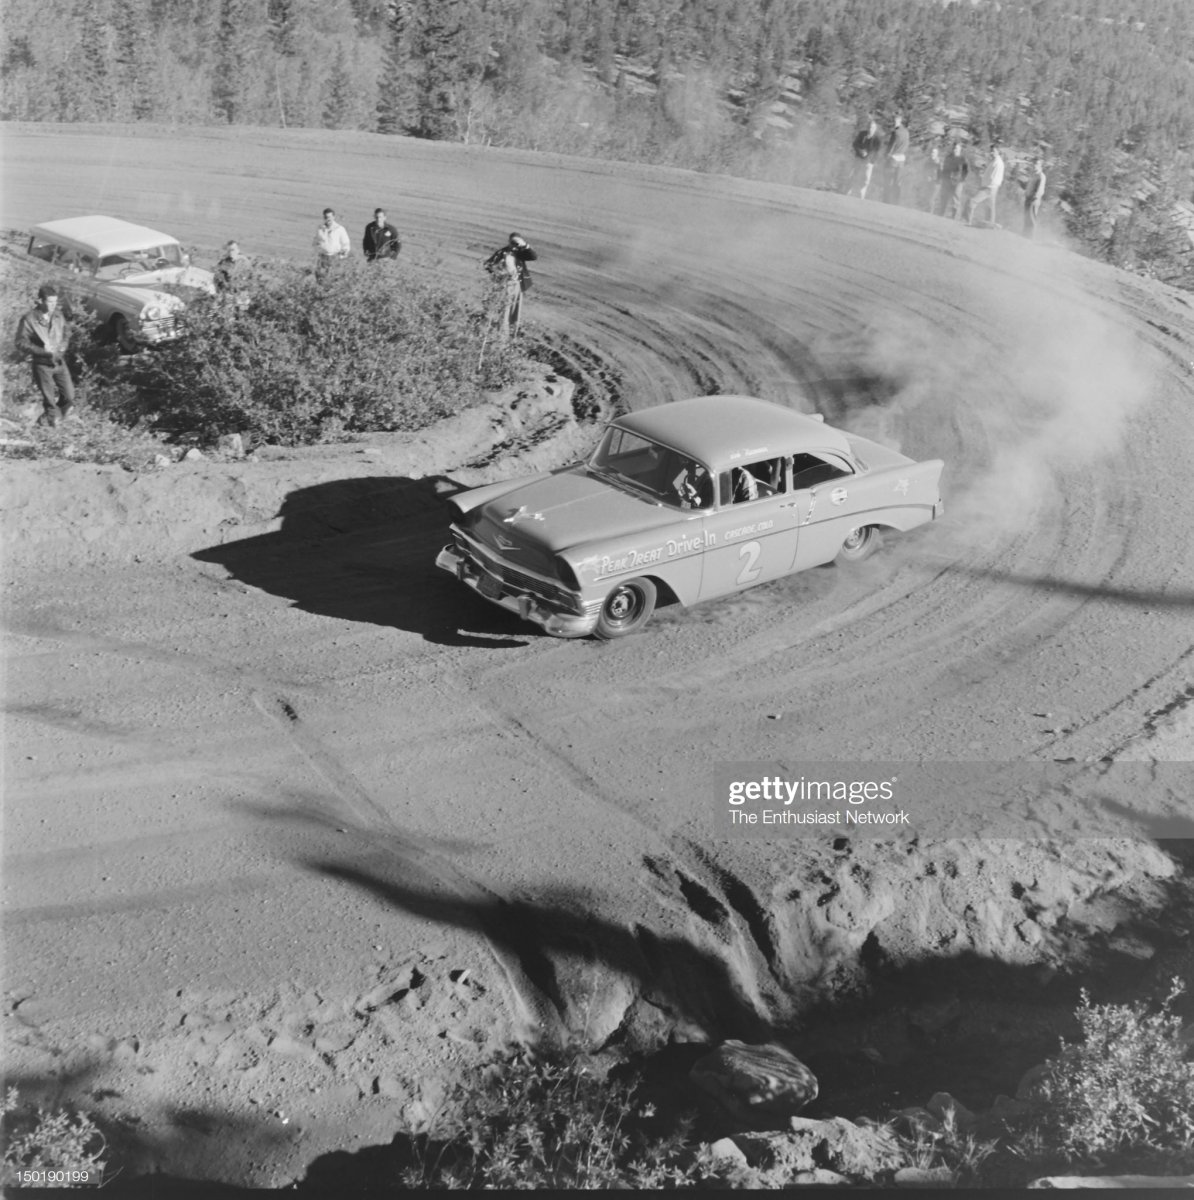 63 1957 Pikes Peak Hill Climb. Bob Newman in his 1956 Chevrolet,.jpg